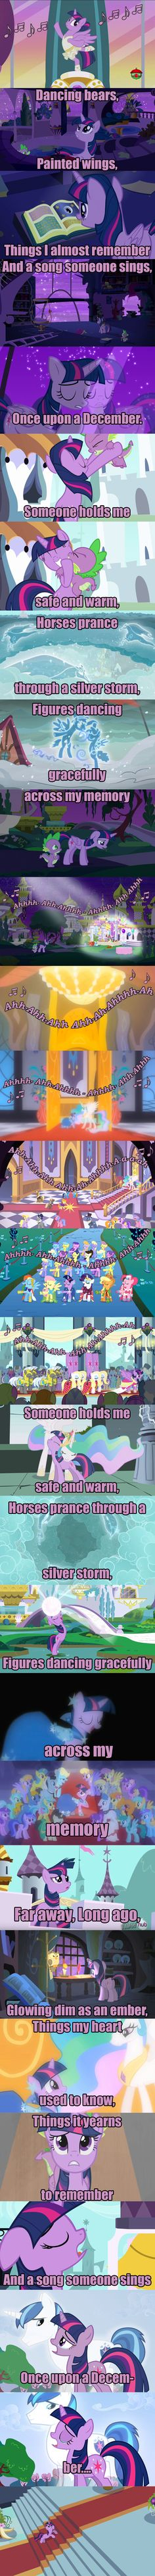 Twilight Sparkle. Once Upon A December. My Little Pony, Don Bluth's Anastasia